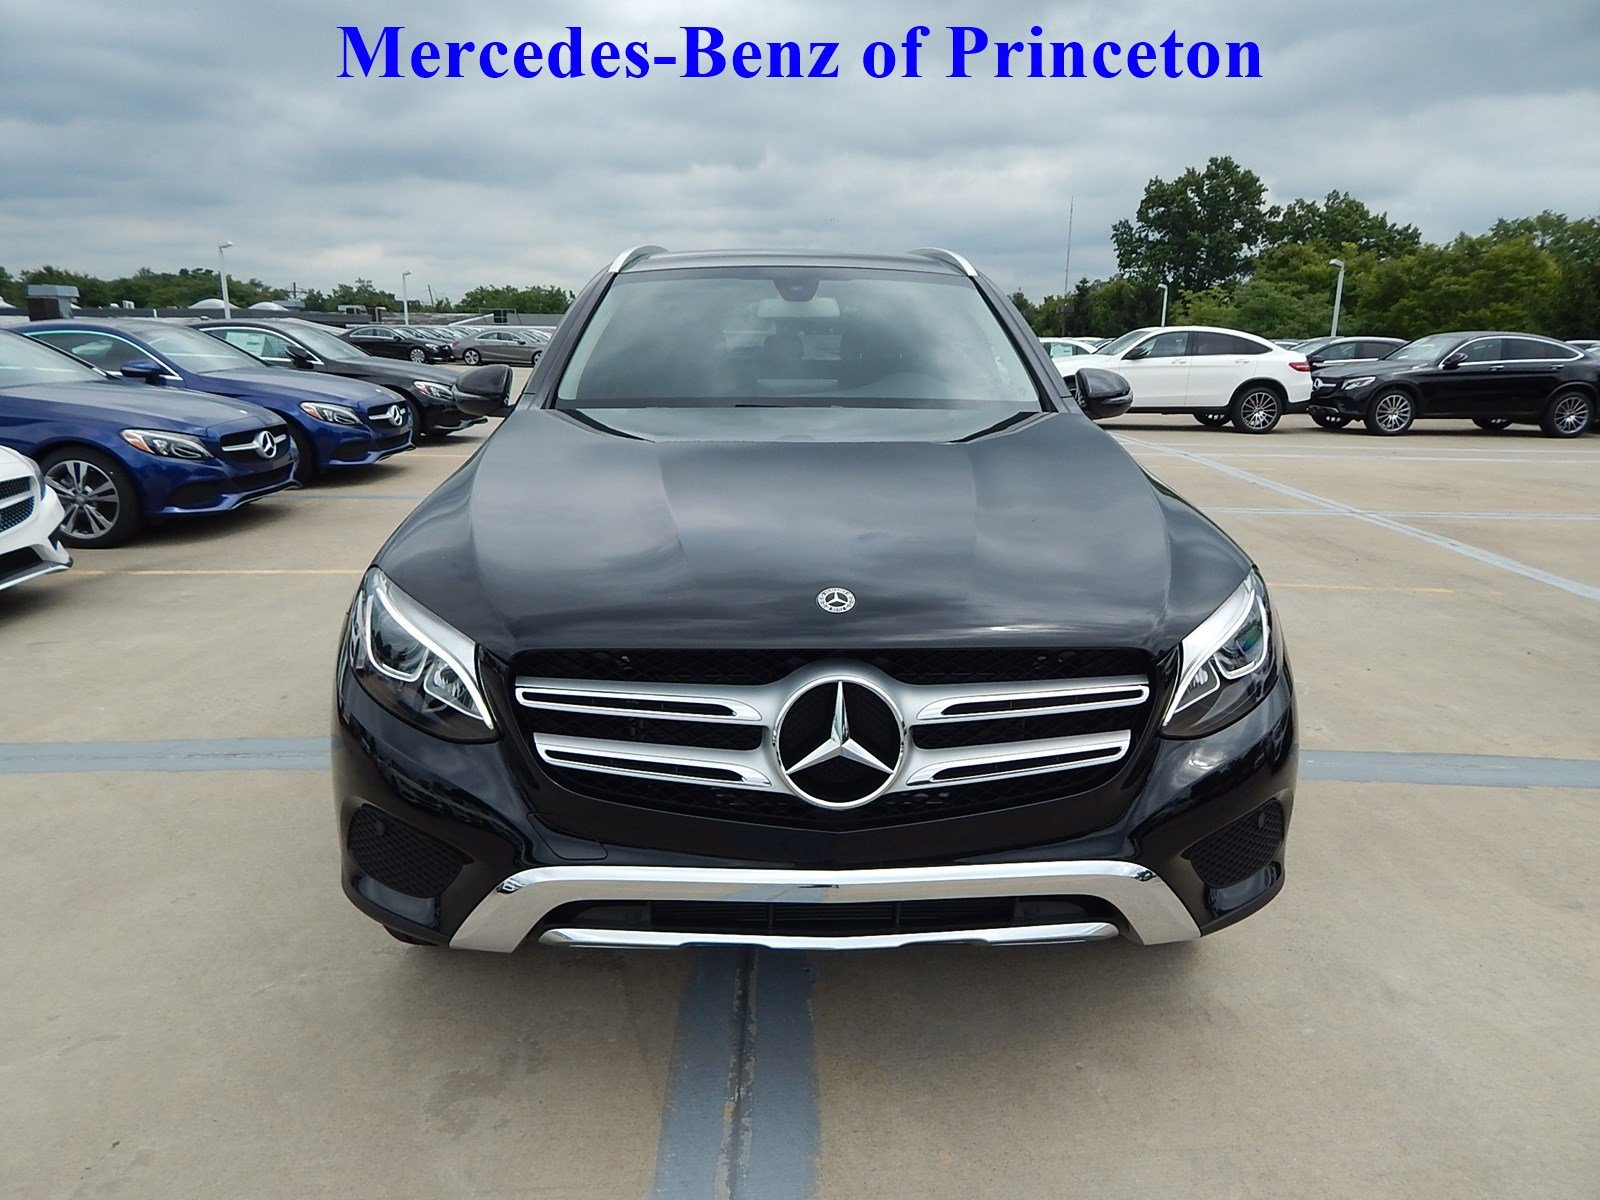 New 2018 mercedes benz glc glc 300 suv in lawrenceville for Mercedes benz princeton